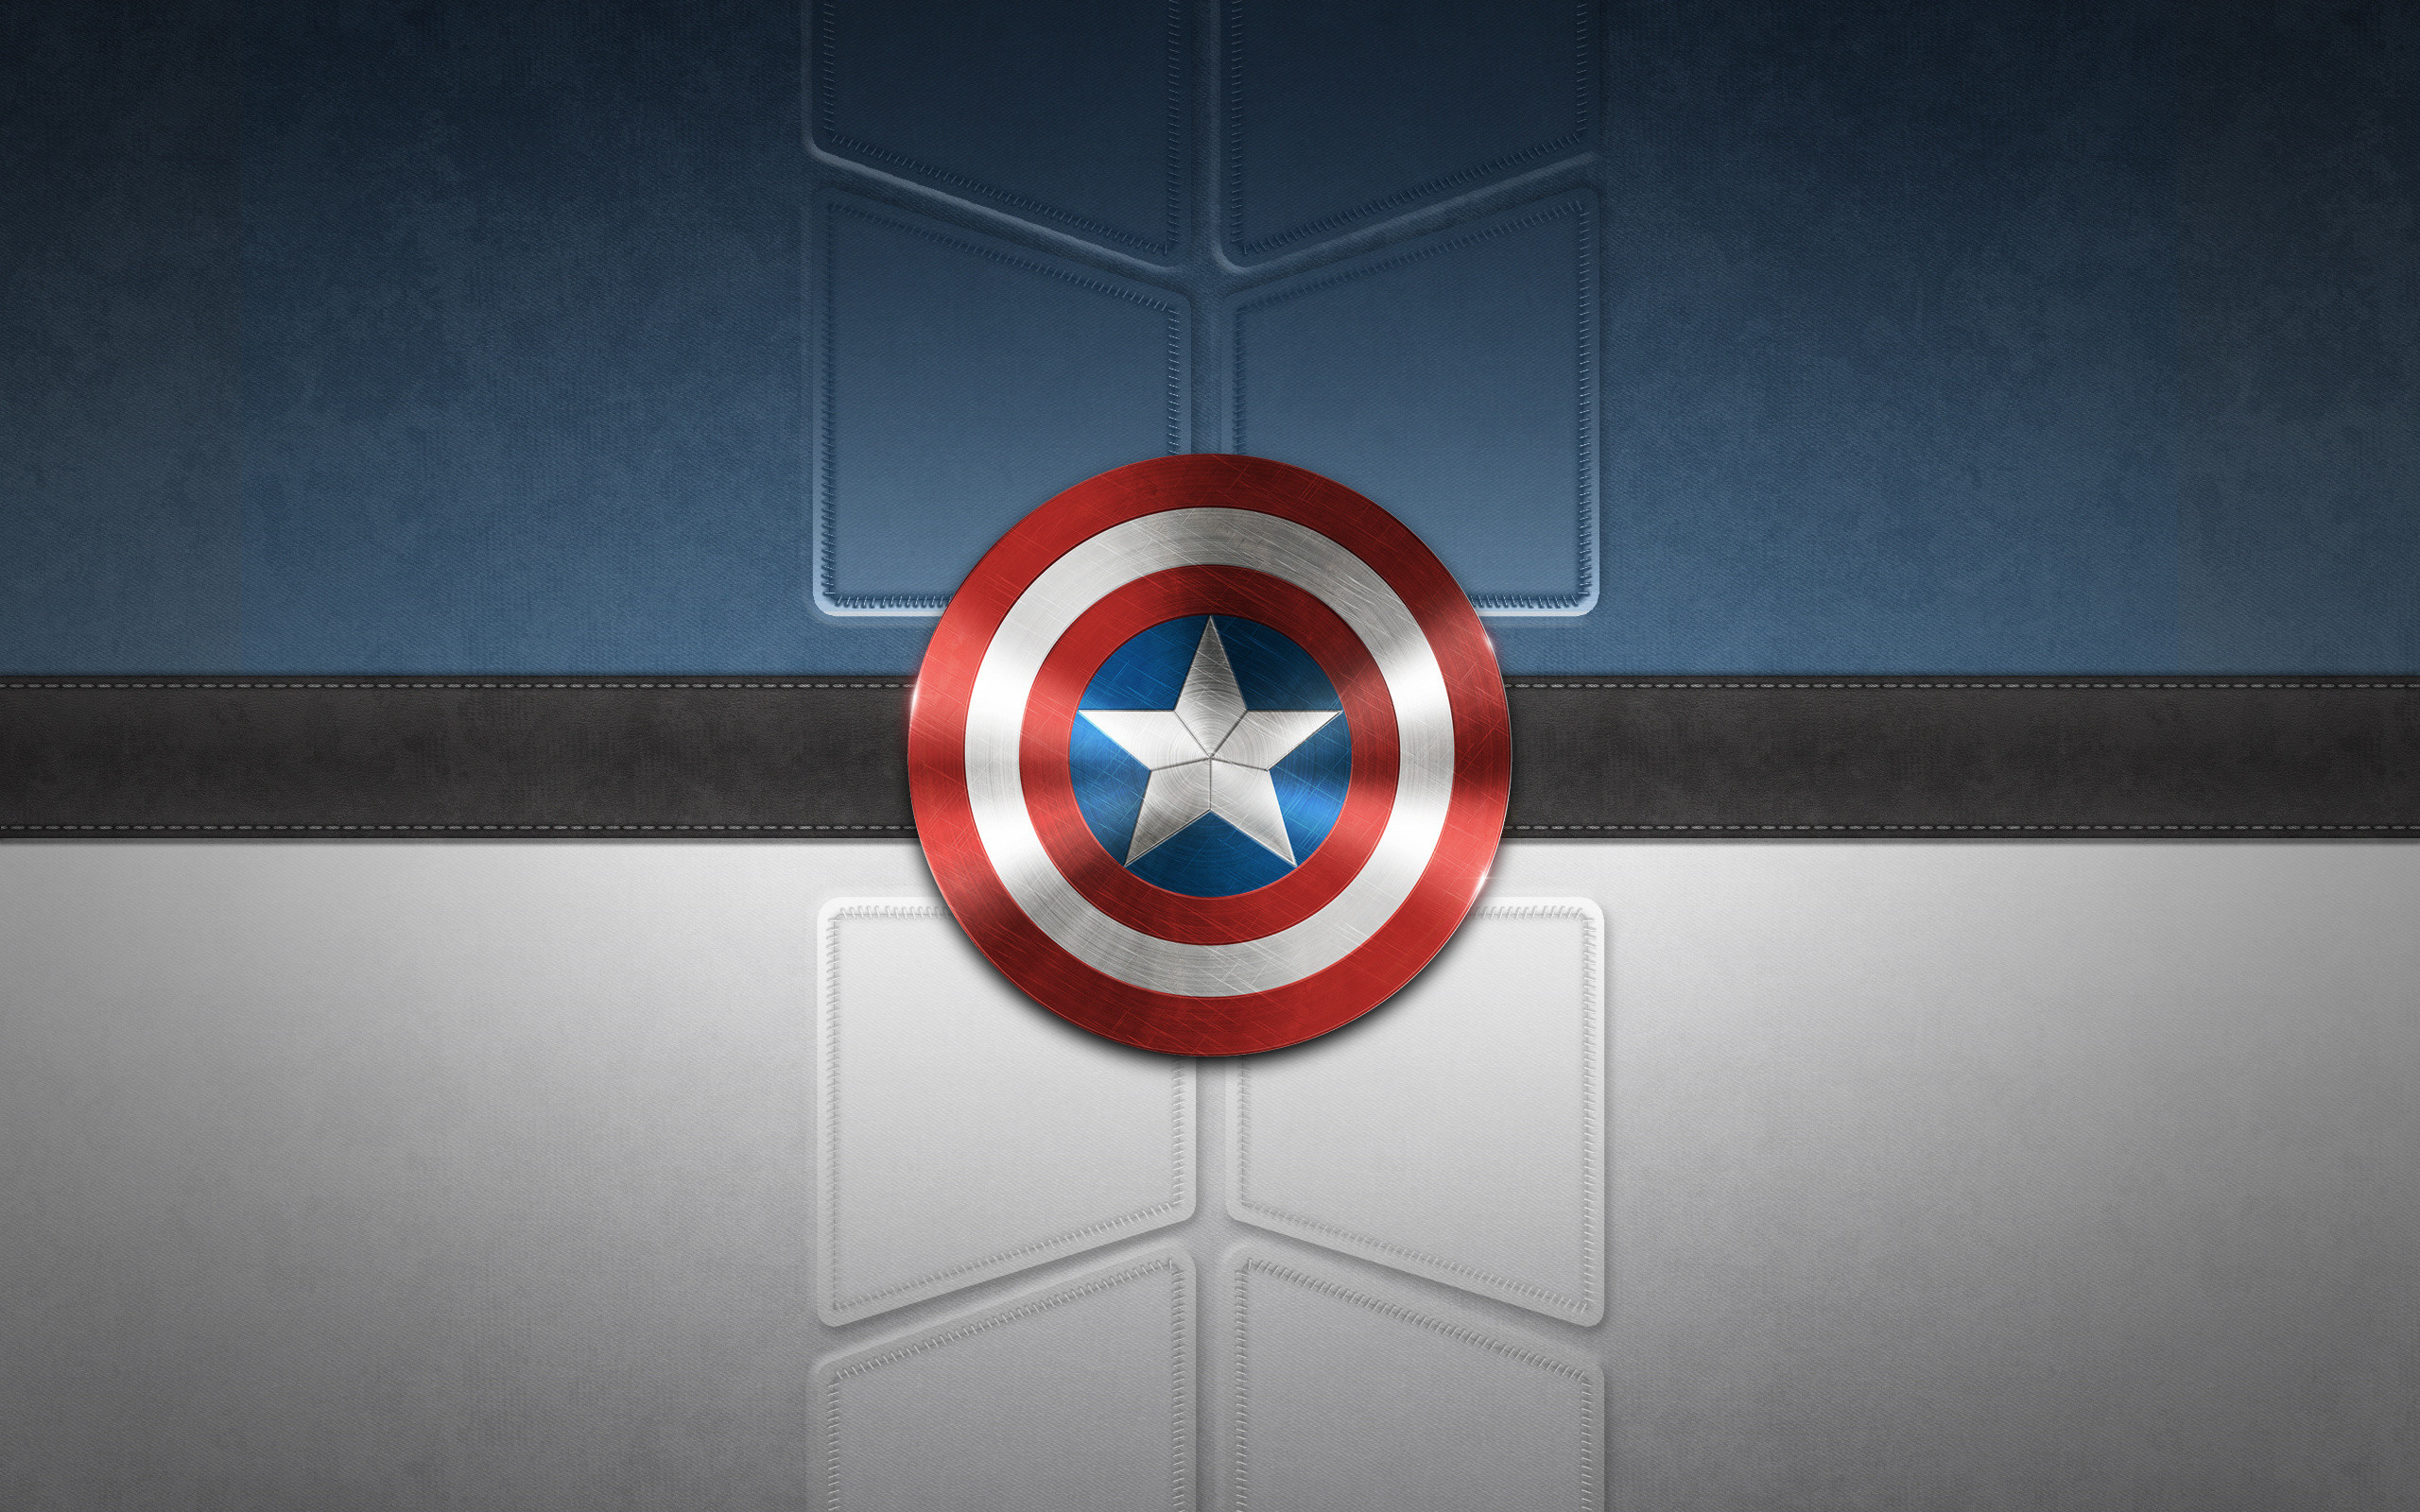 2560x1600 Captain America Wallpaper